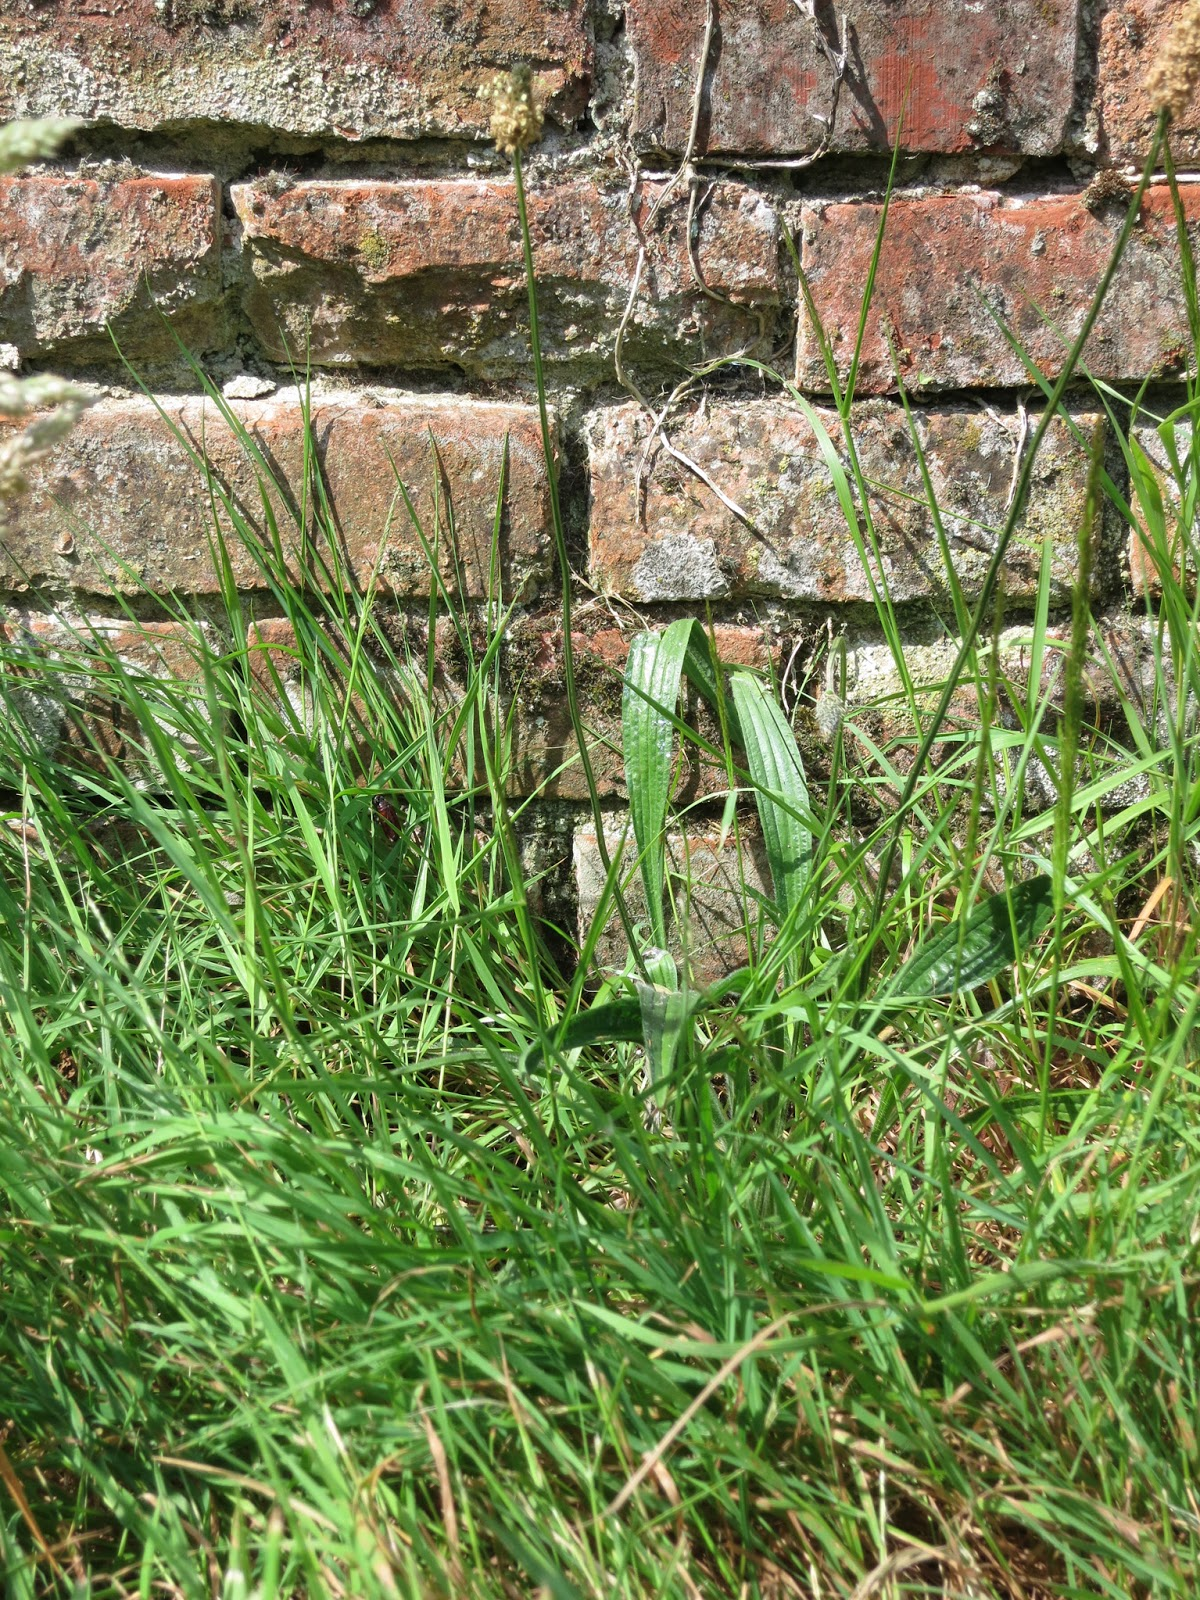 Grass and plantain in front of crumbling brick wall